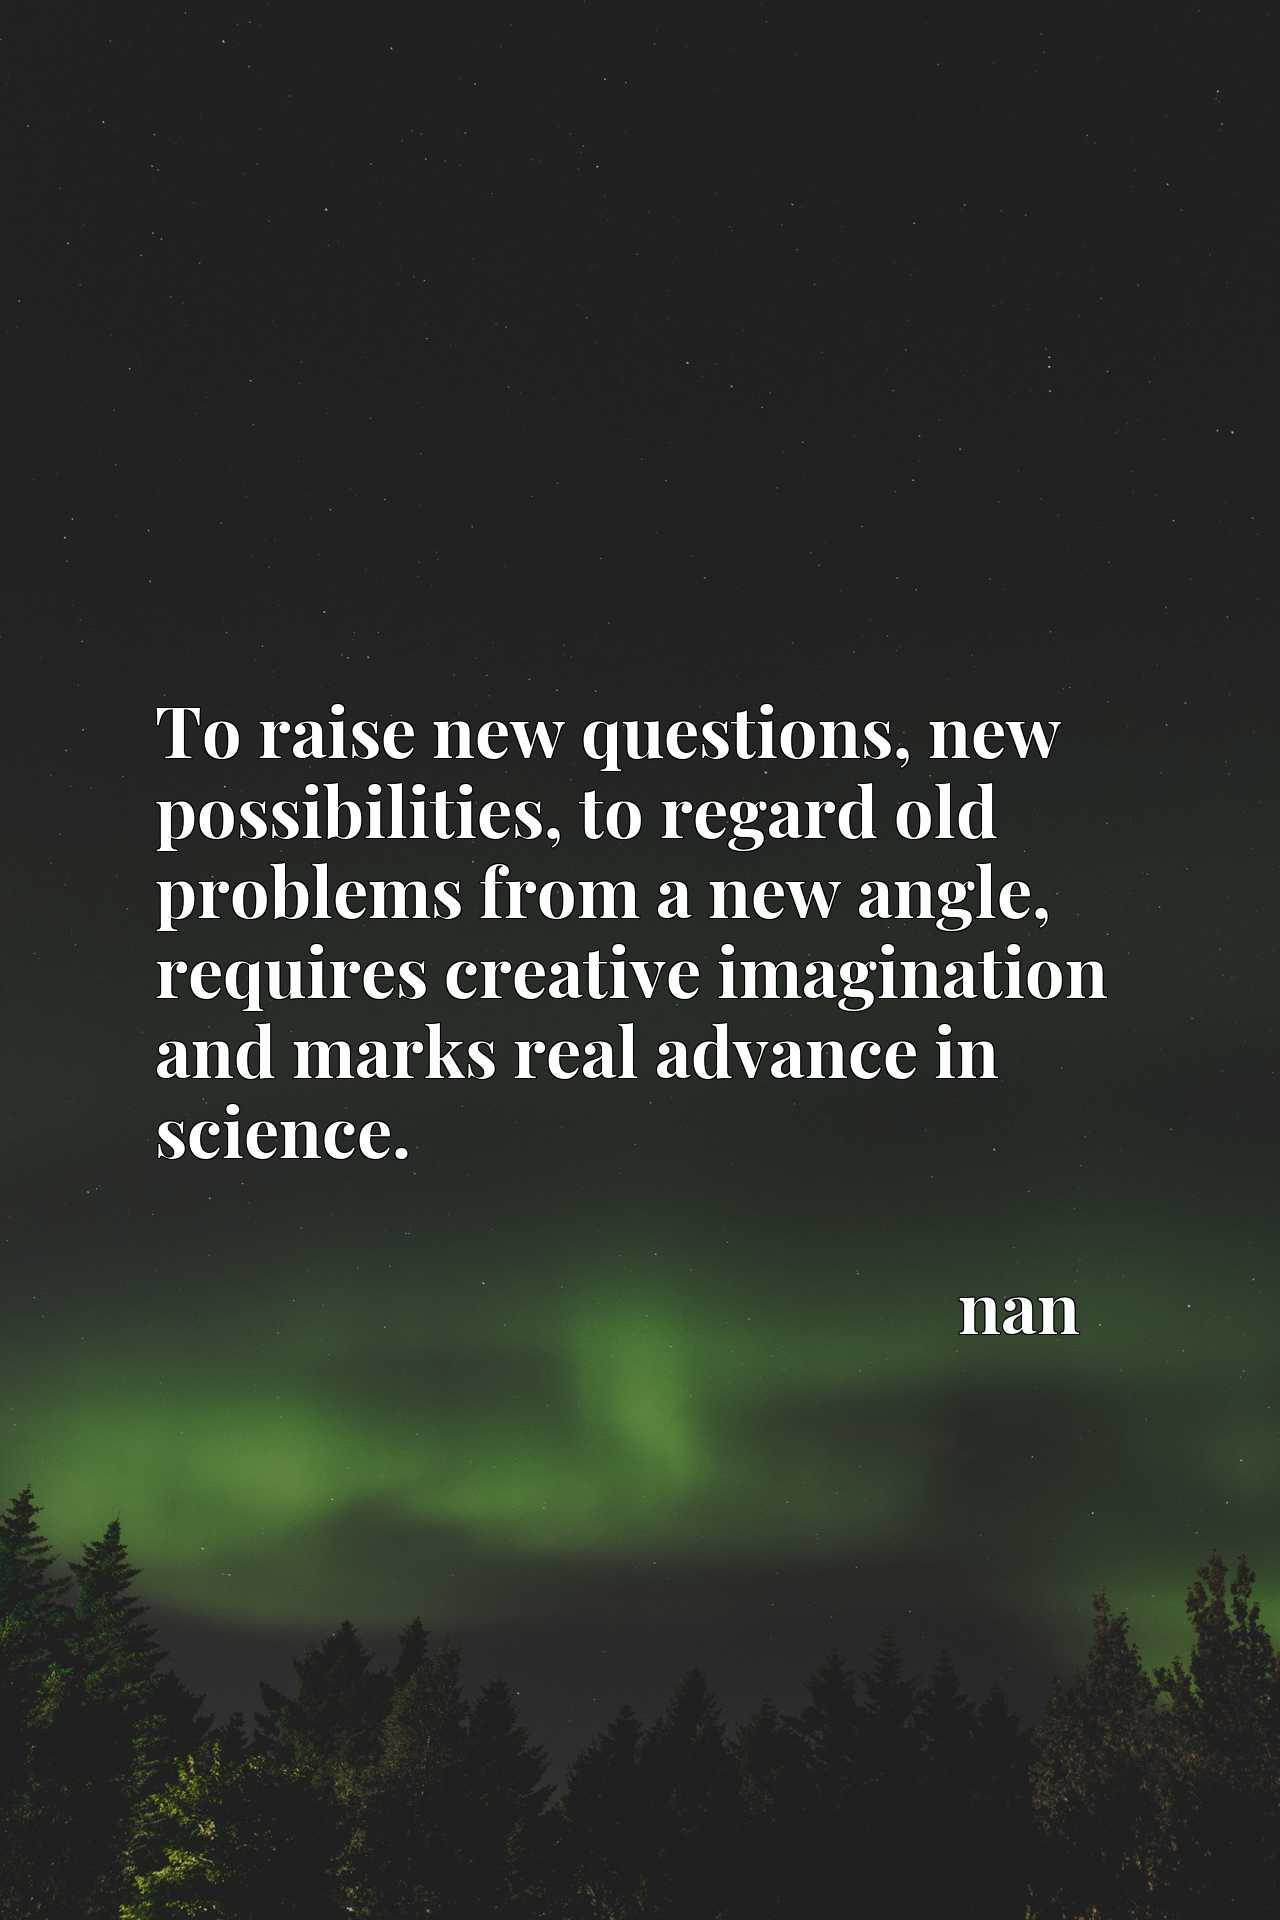 To raise new questions, new possibilities, to regard old problems from a new angle, requires creative imagination and marks real advance in science.